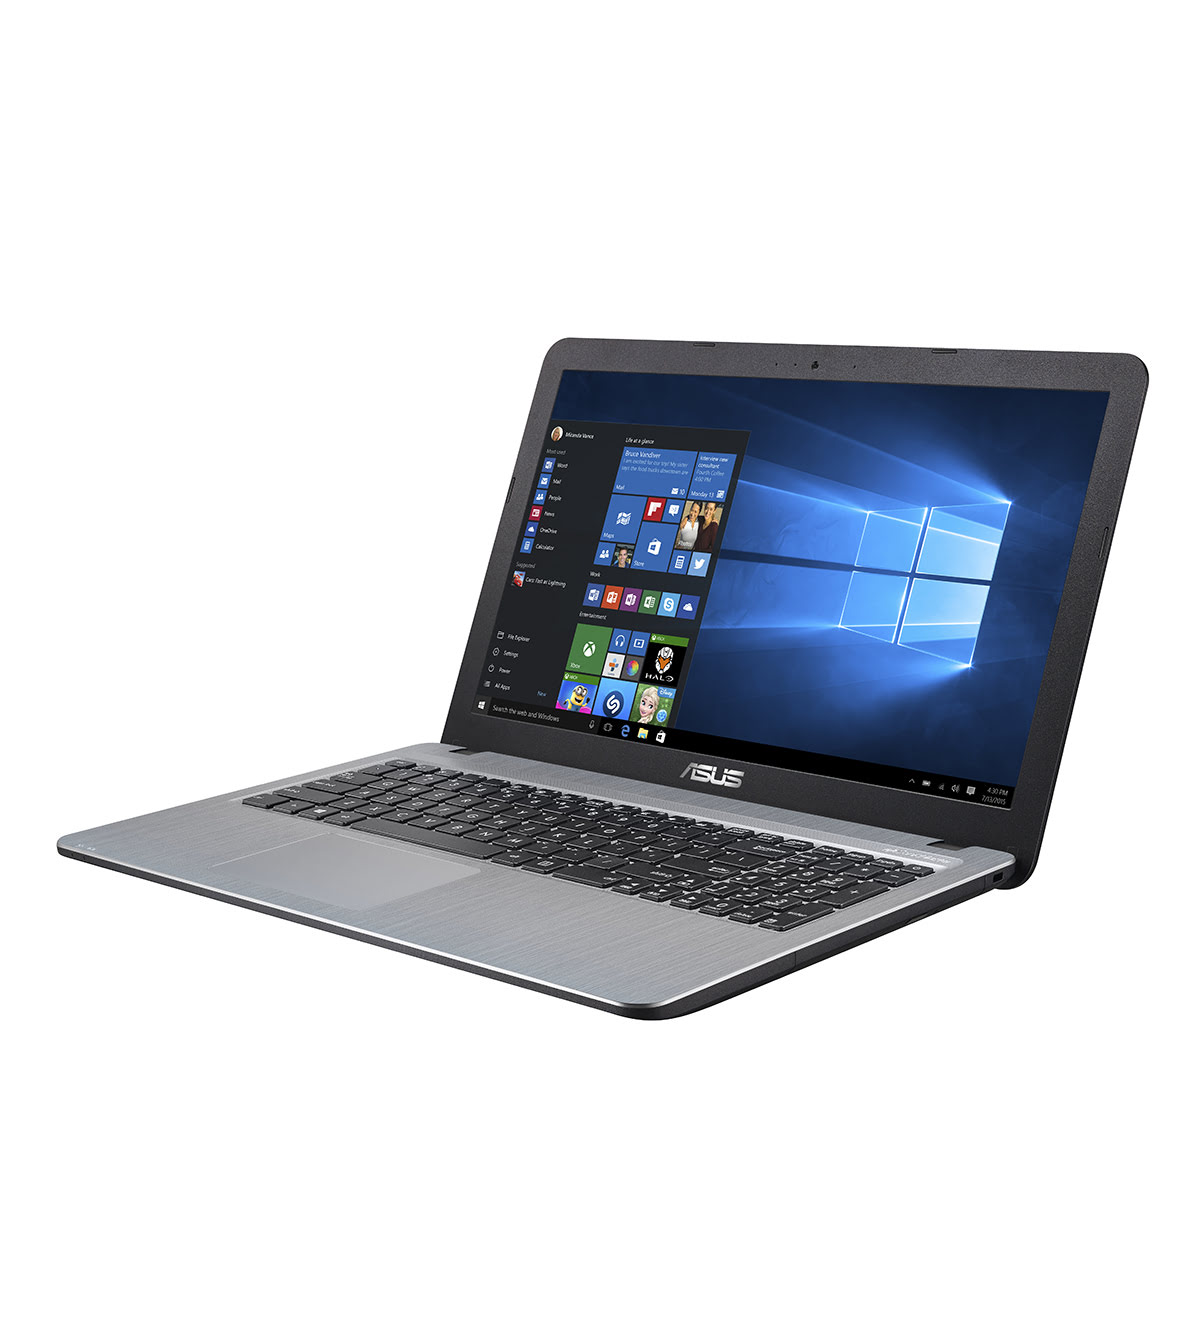 Asus 90NB0B03-M25310 - PC portable Asus - Cybertek.fr - 6